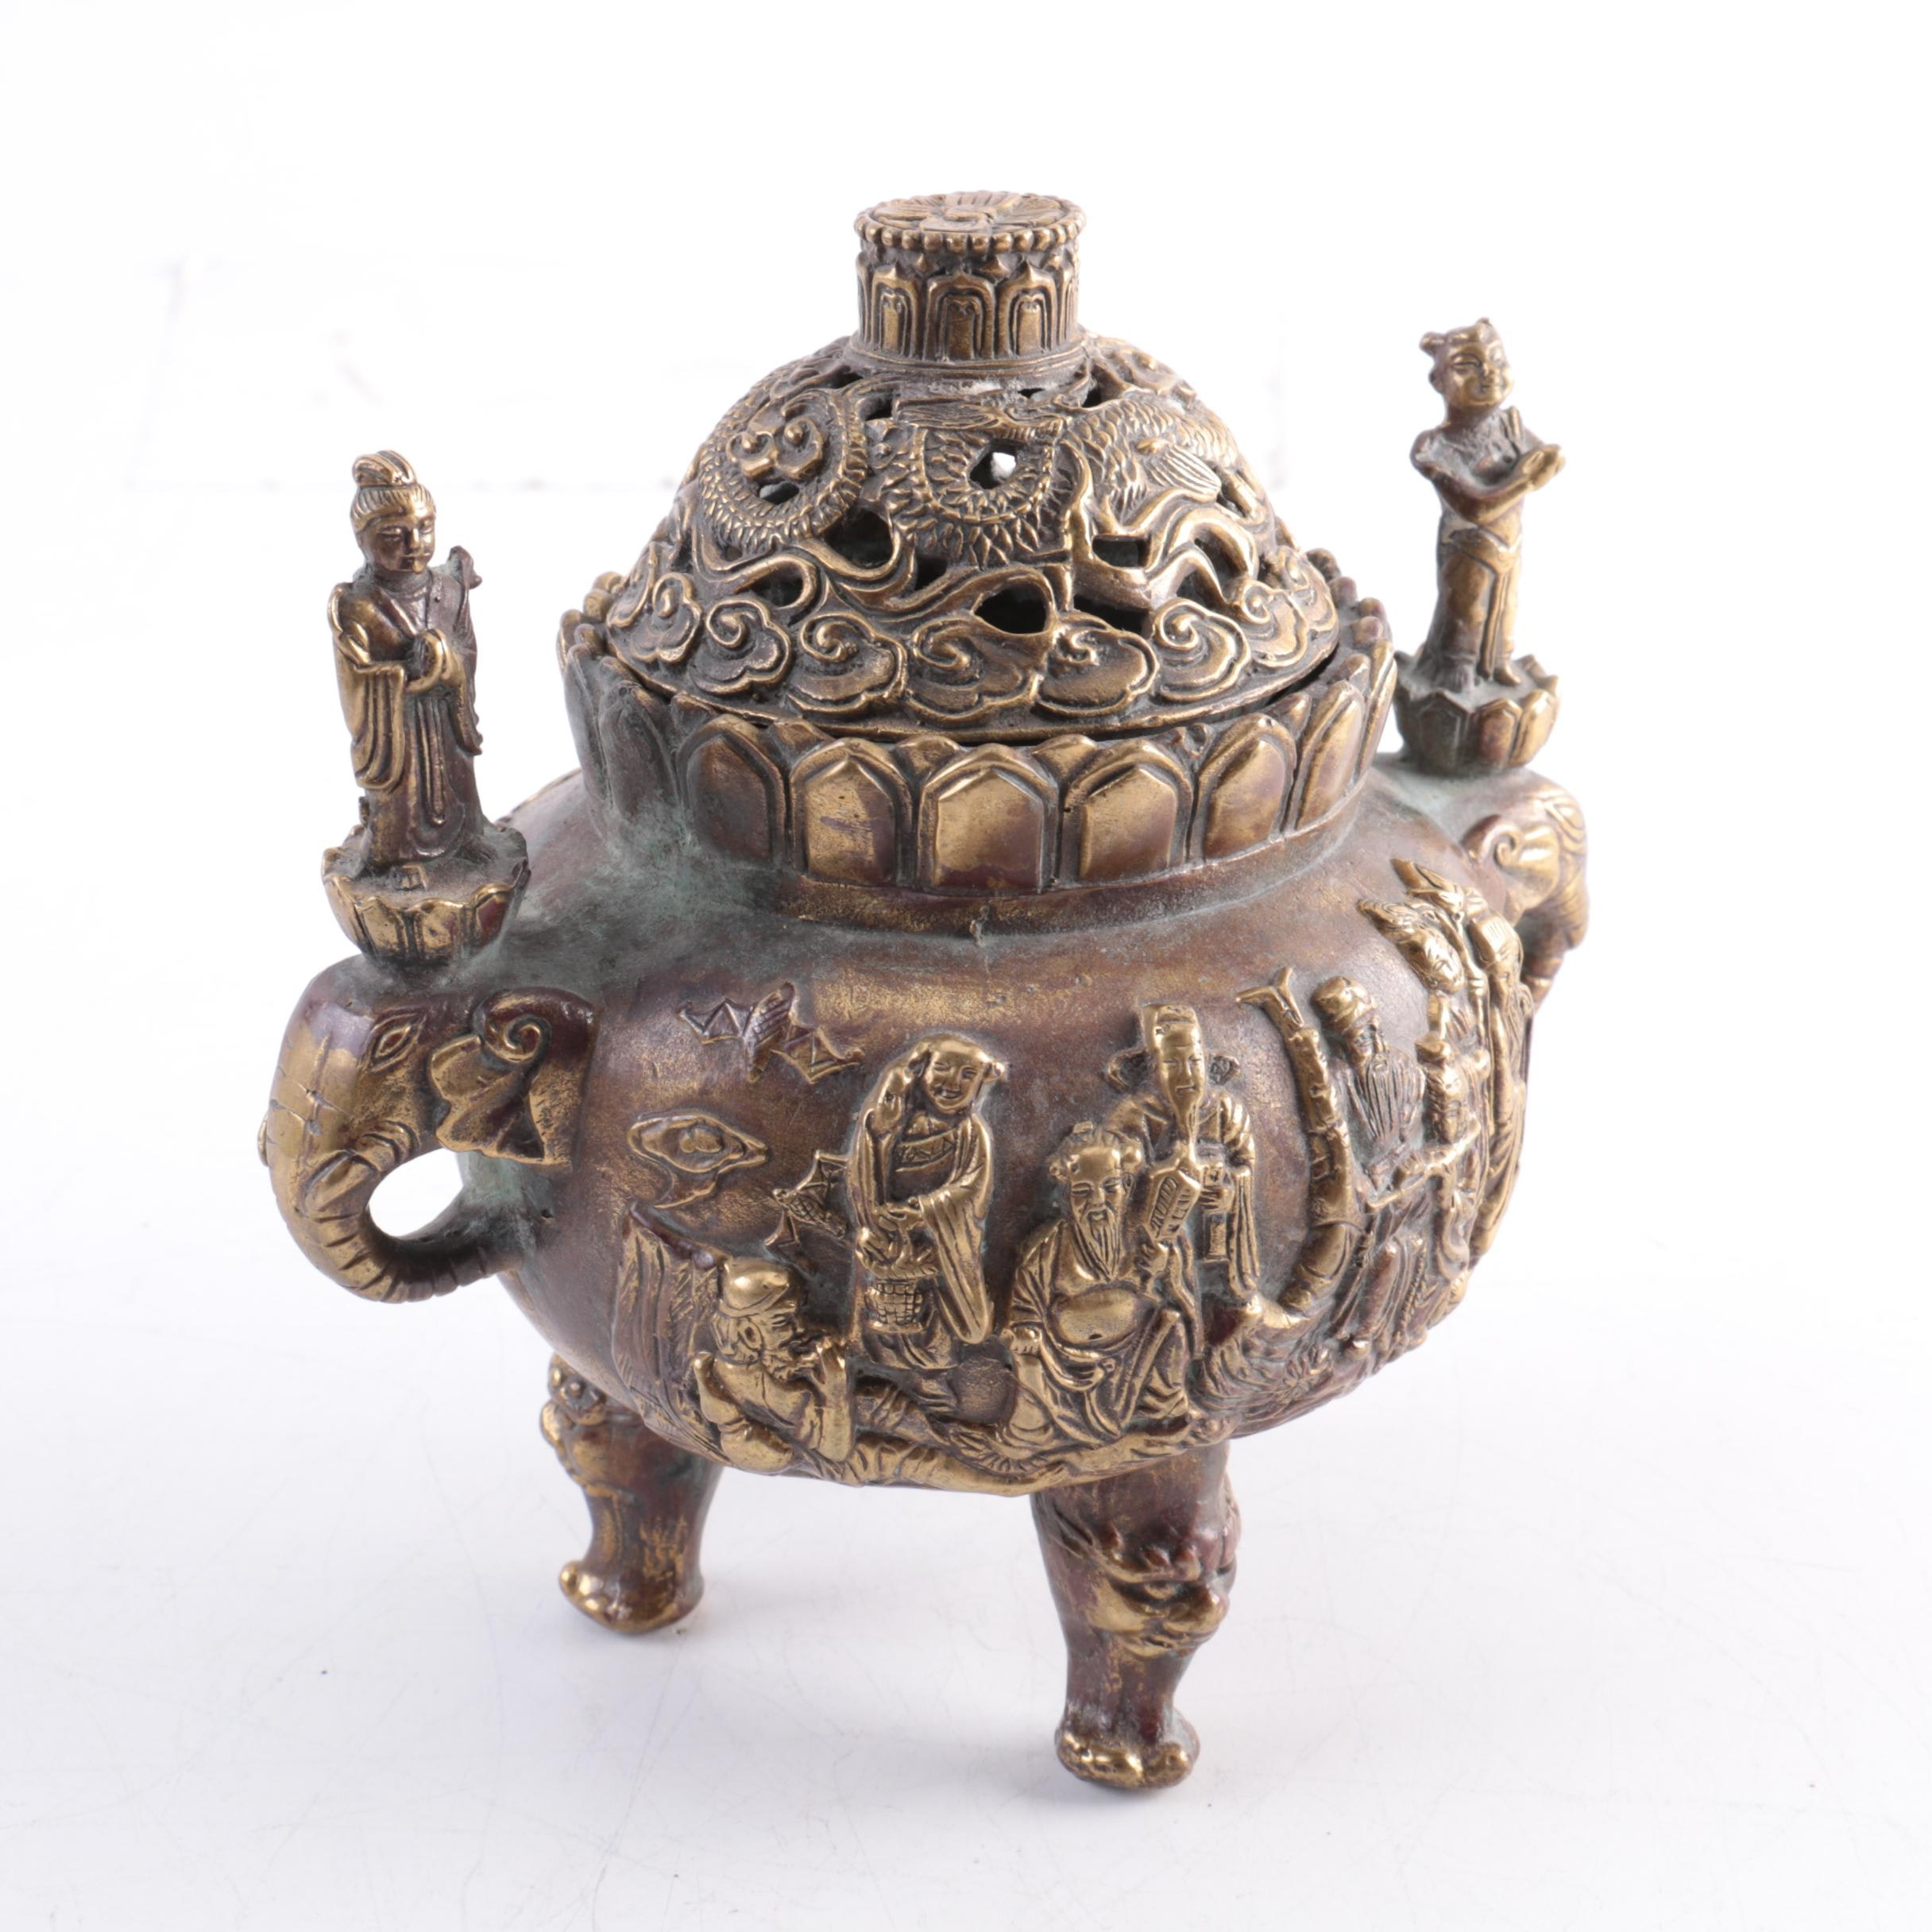 19th Century Chinese Brass Censer with Figures and Elephant Handles